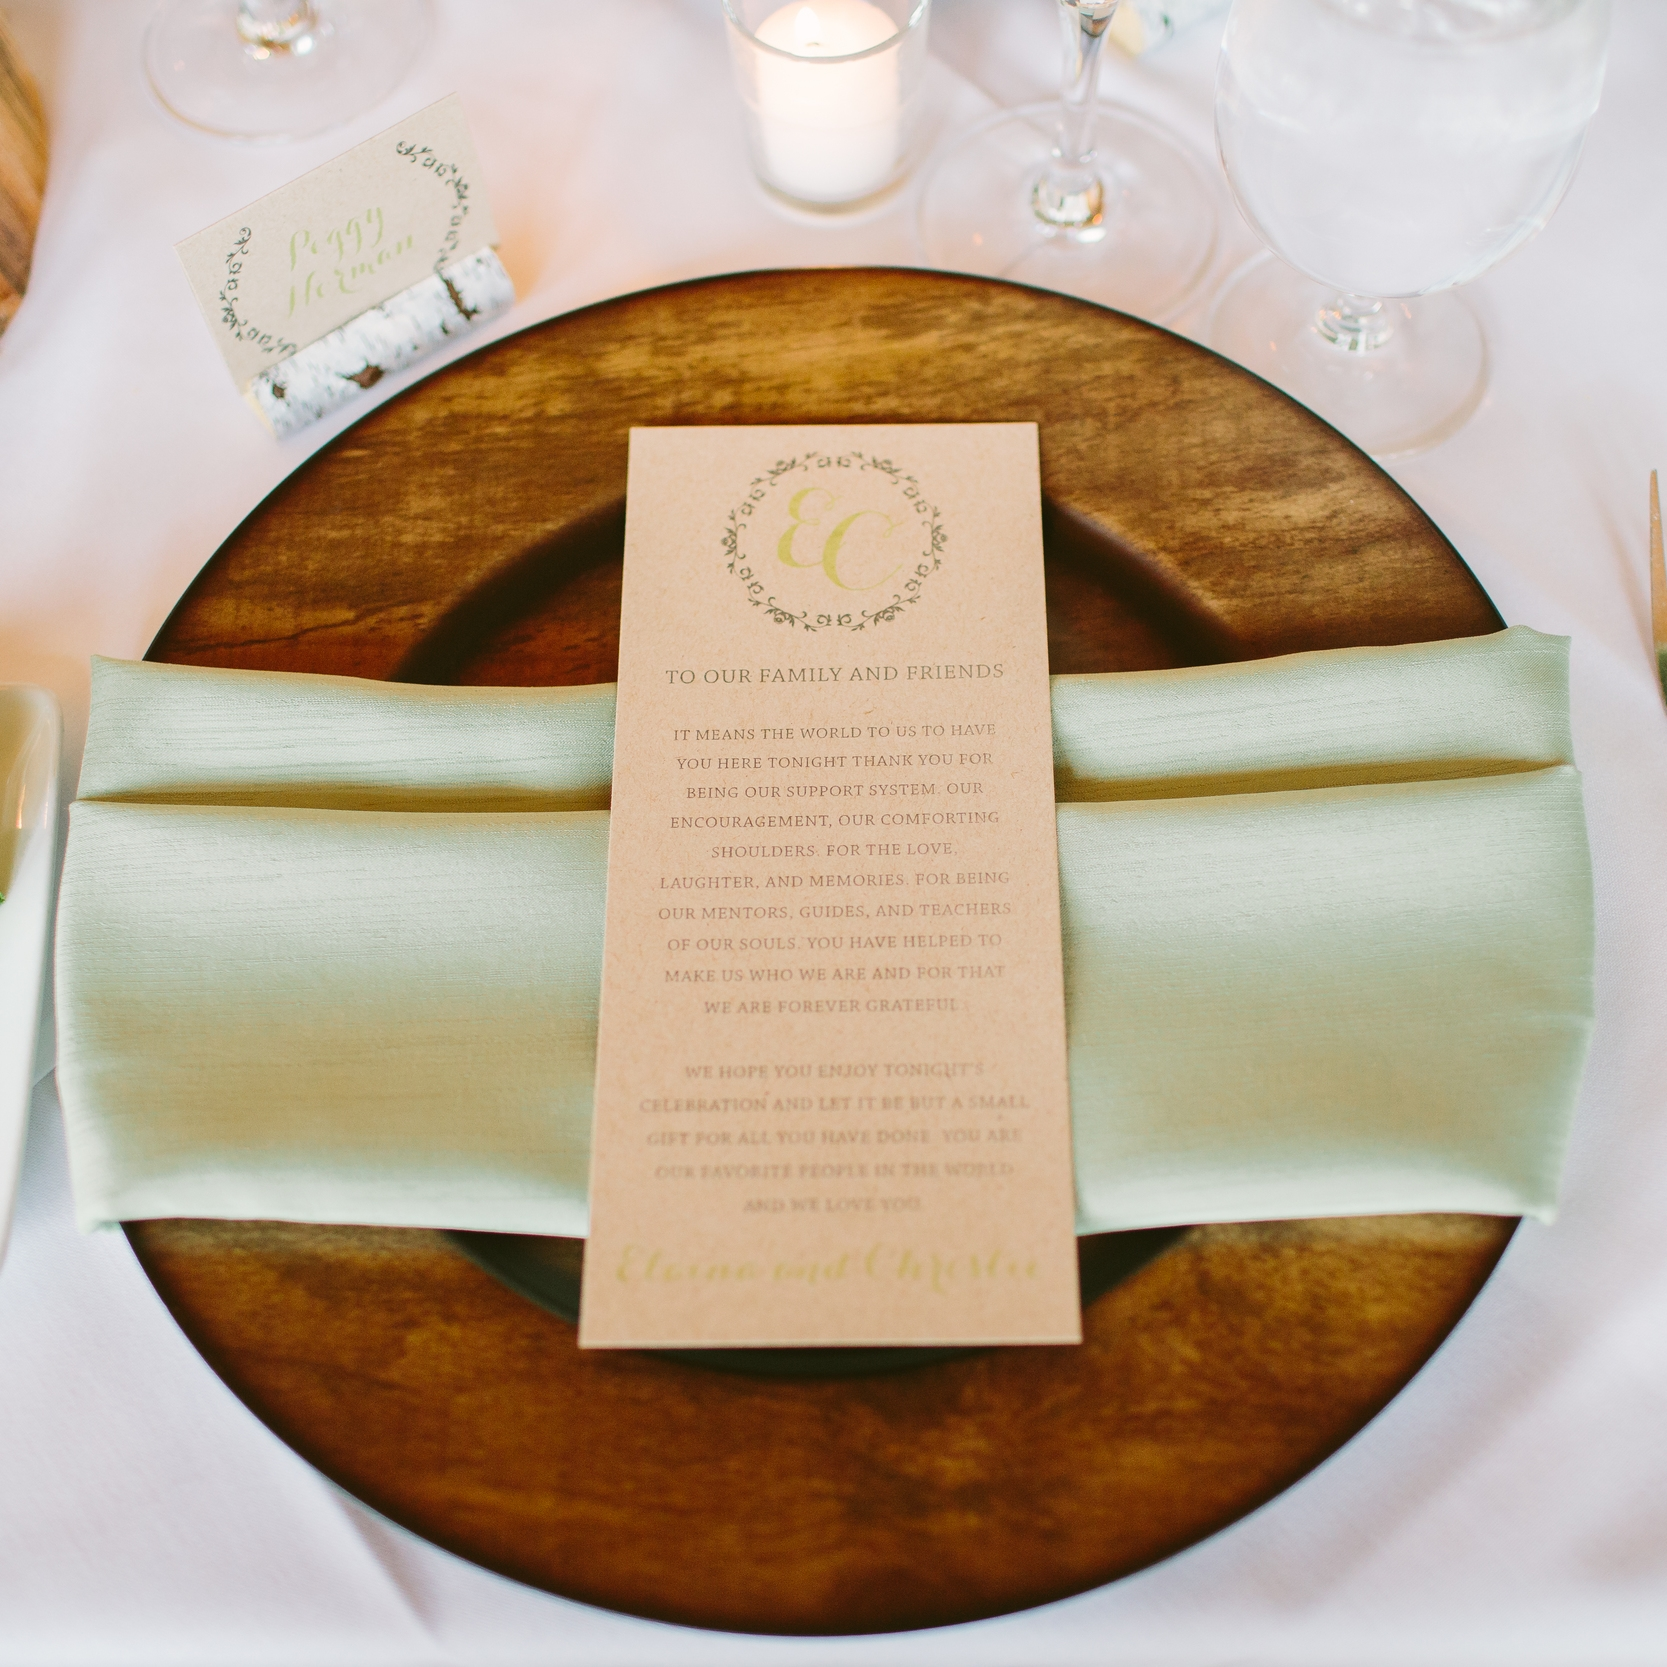 Pink Umbrella Designs - Wedding Menu. Photo by Julie Williams Photography